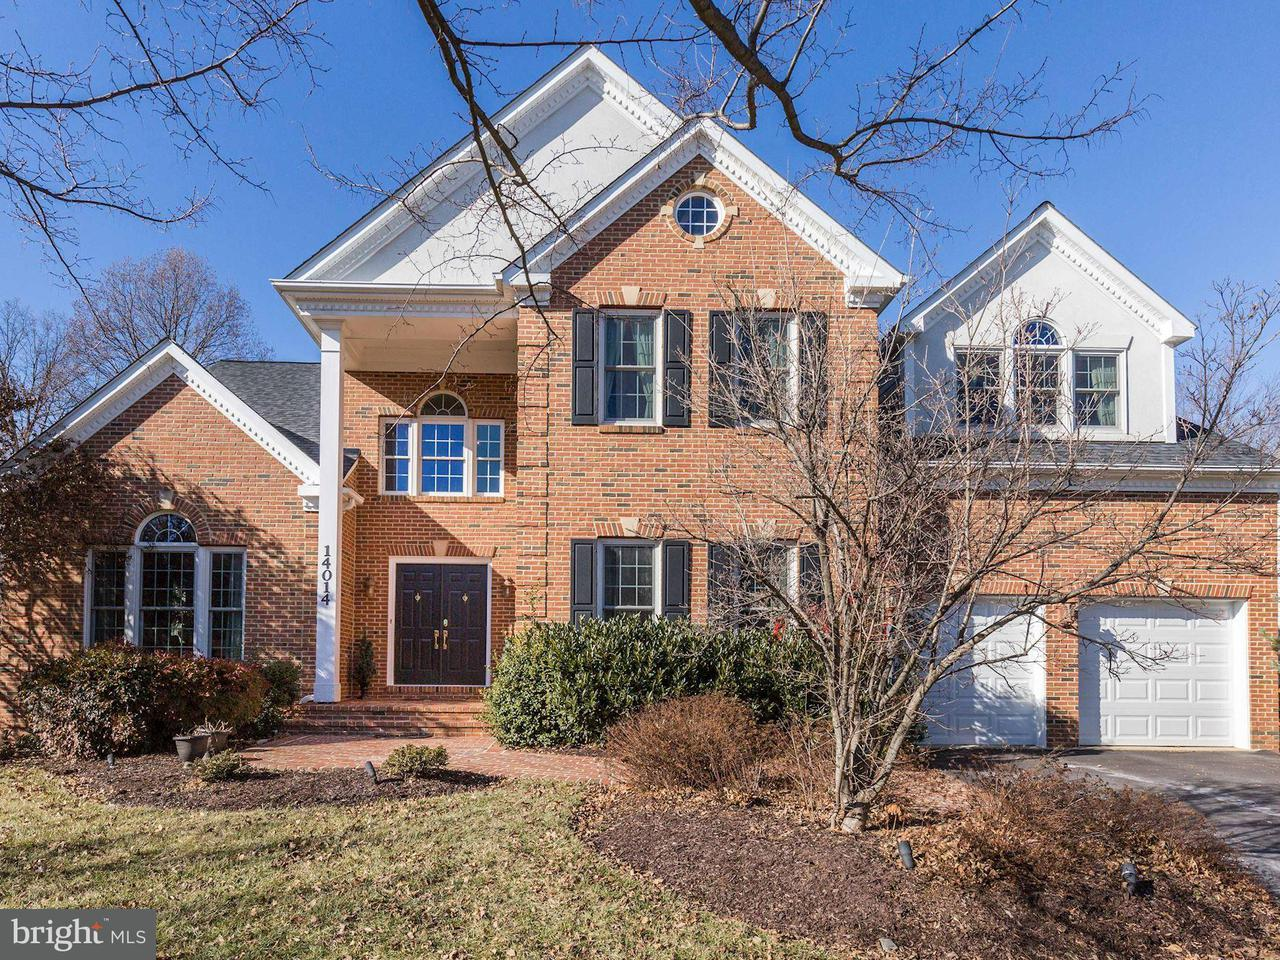 Single Family Home for Sale at 14014 Loblolly Ter 14014 Loblolly Ter Rockville, Maryland 20850 United States